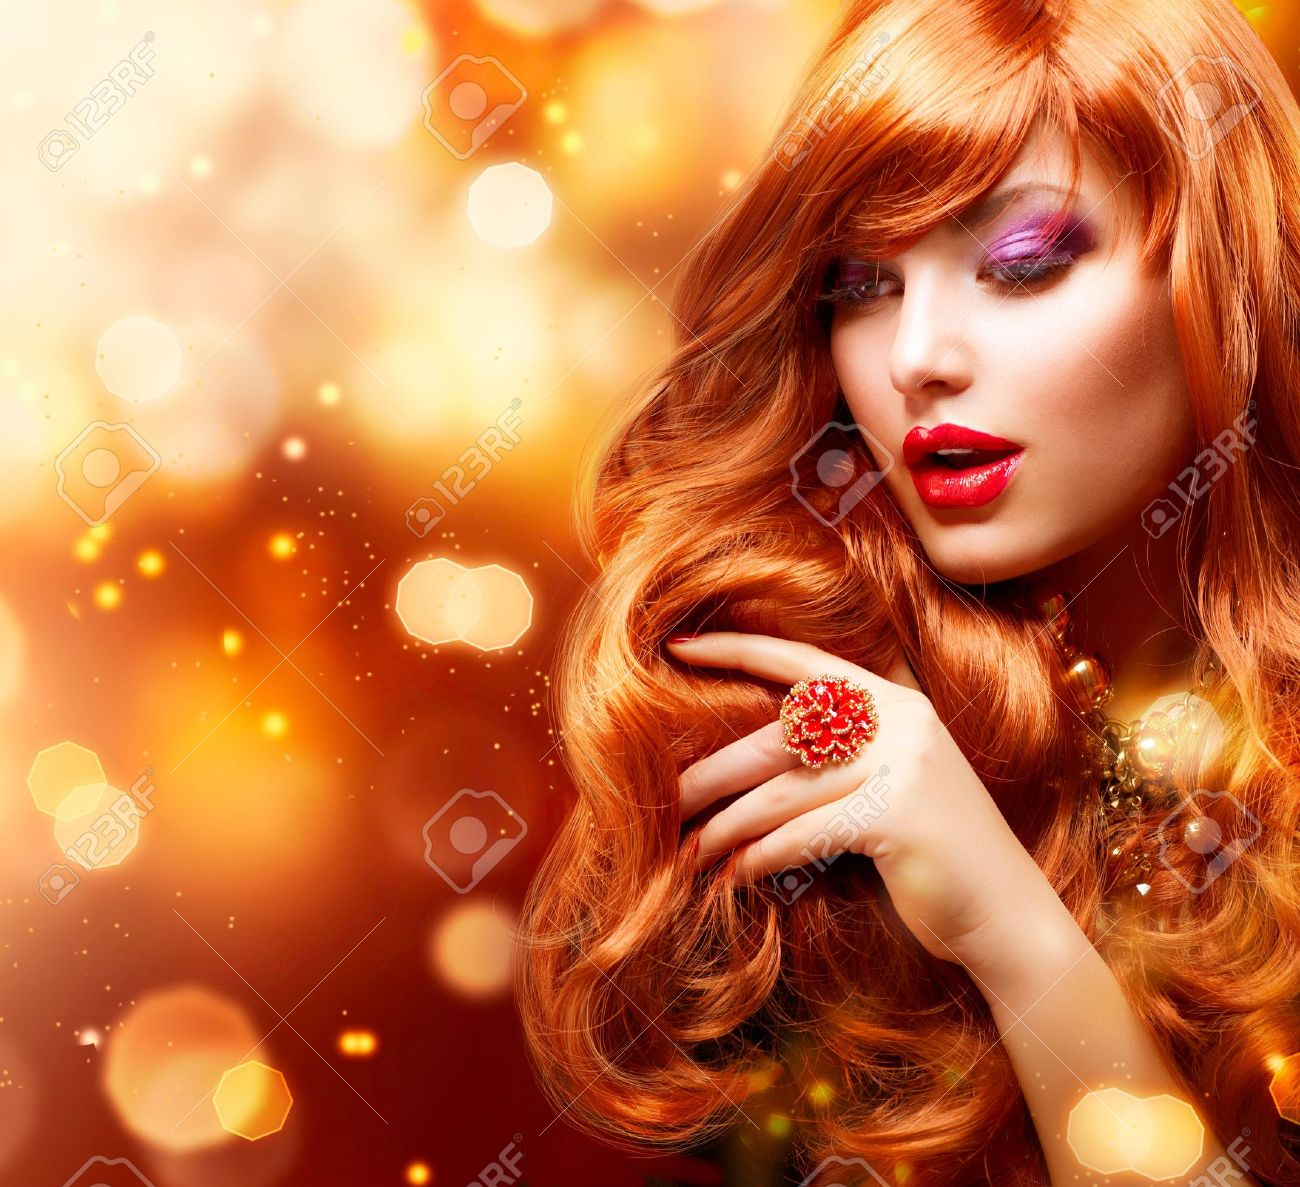 Golden Fashion Girl Portrait  Wavy Red Hair Stock Photo - 14193494